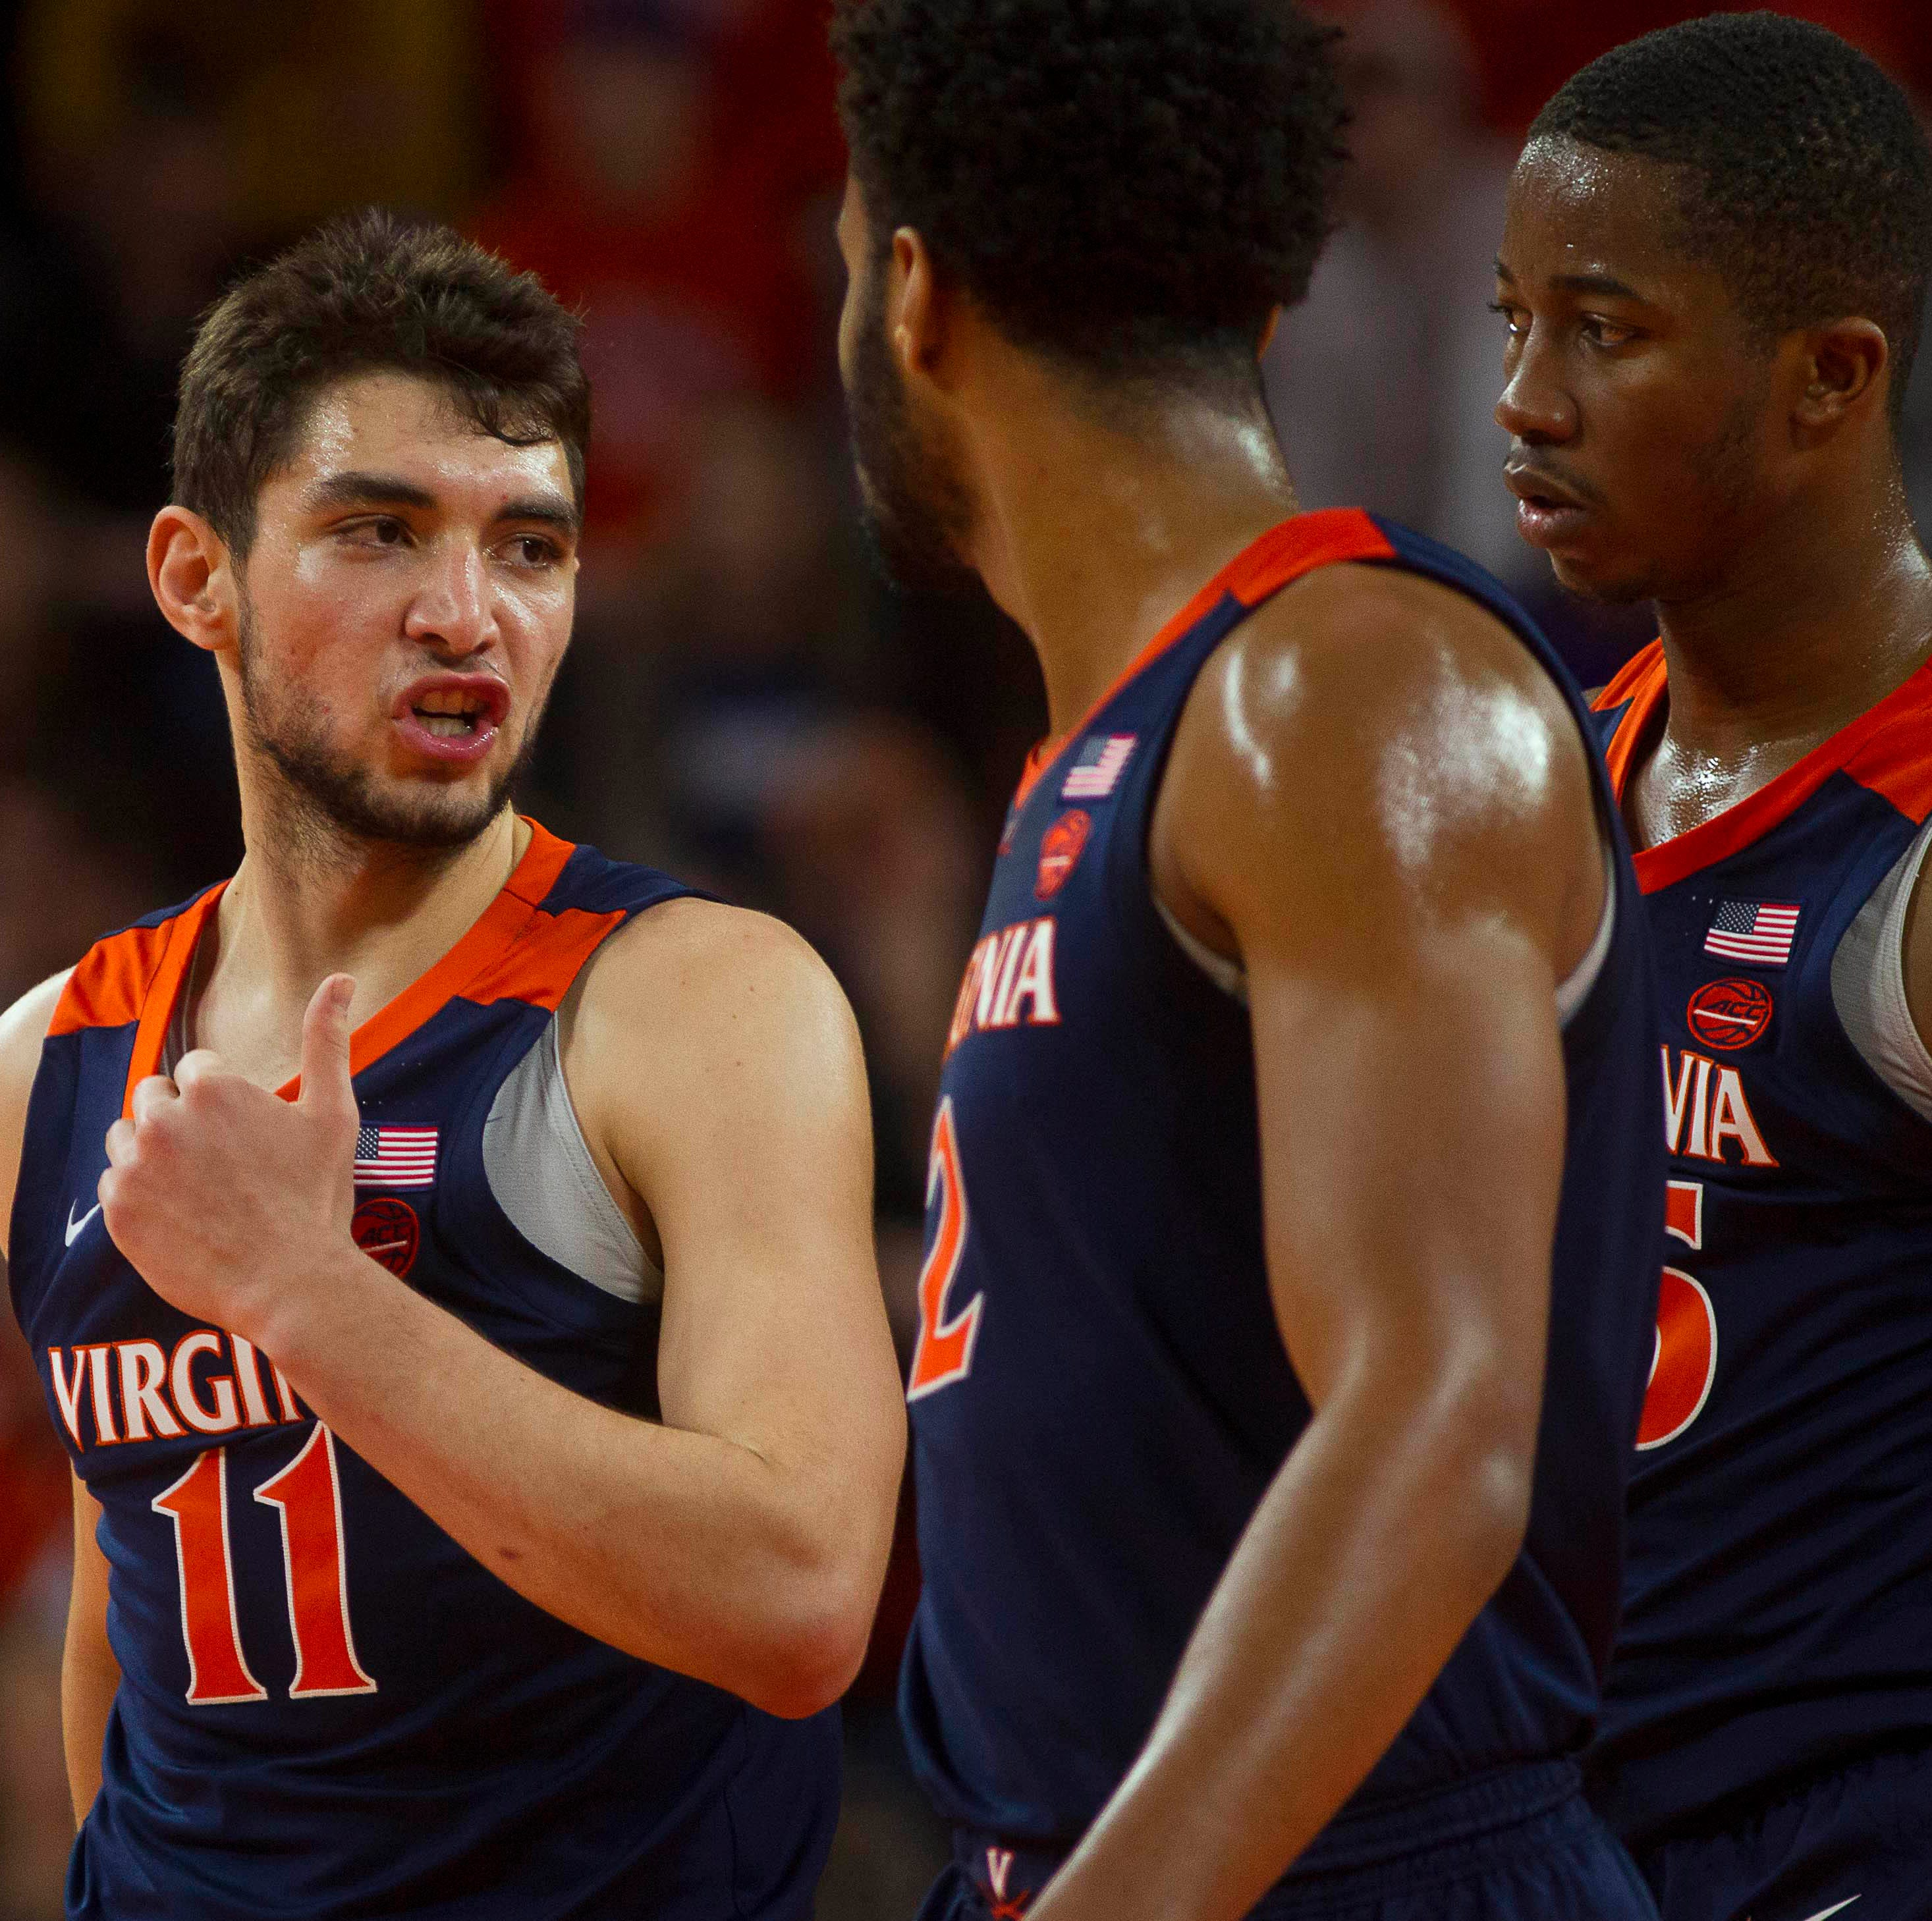 Tech and UVA top-10 basketball meeting a first in rivalry